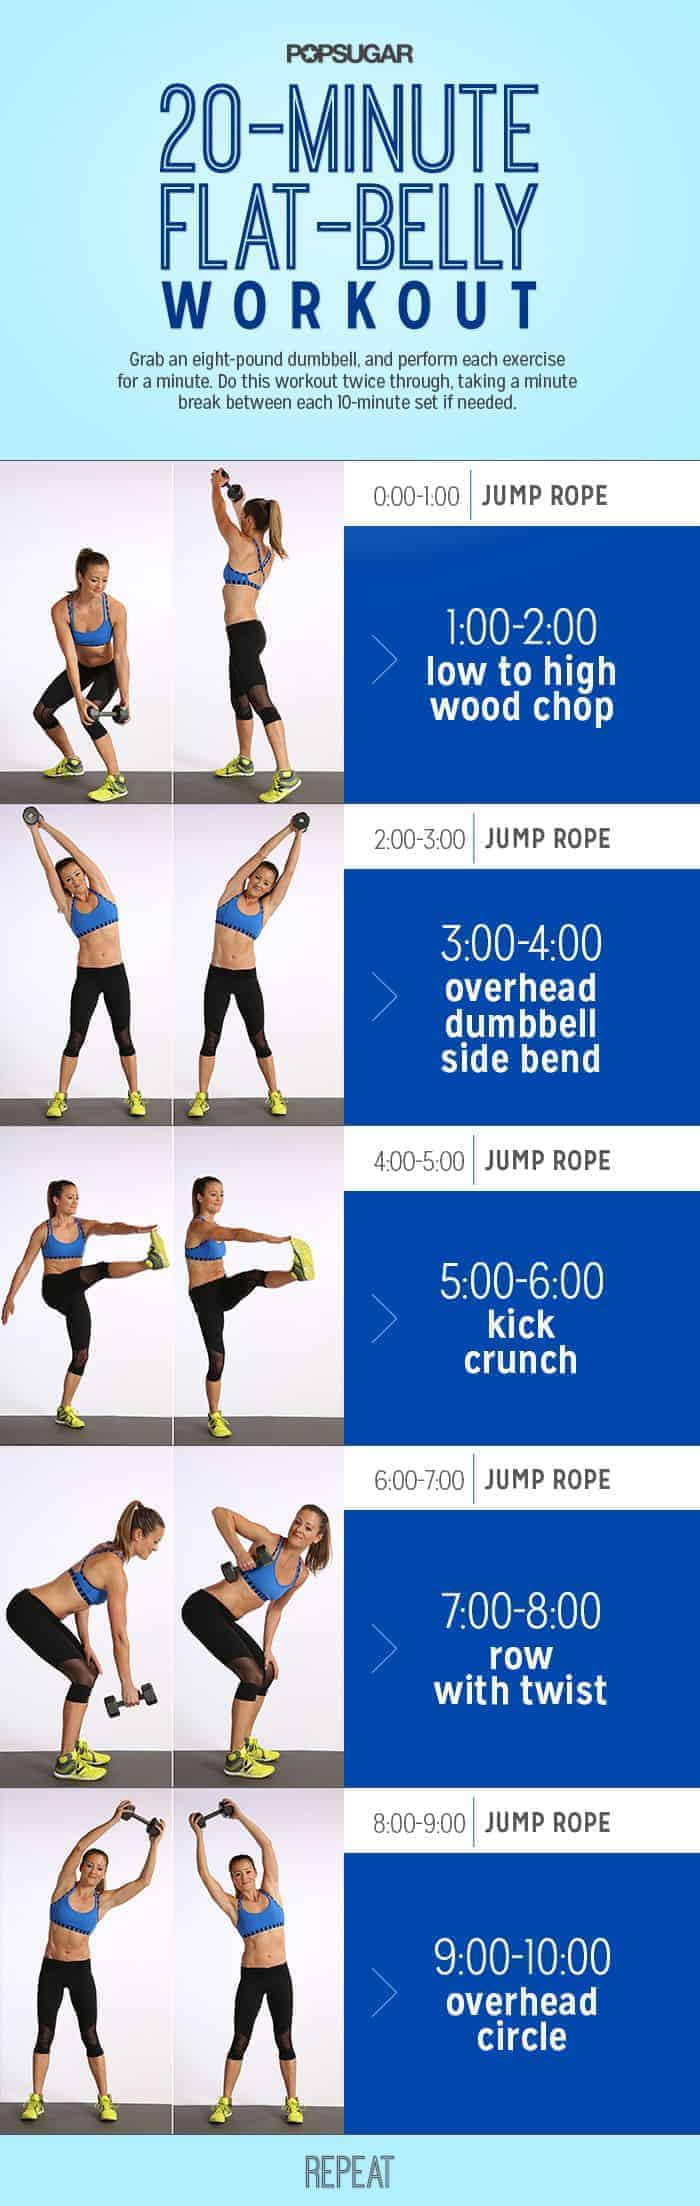 Top Standing Ab Exercises and Workouts to Burn Belly Fat